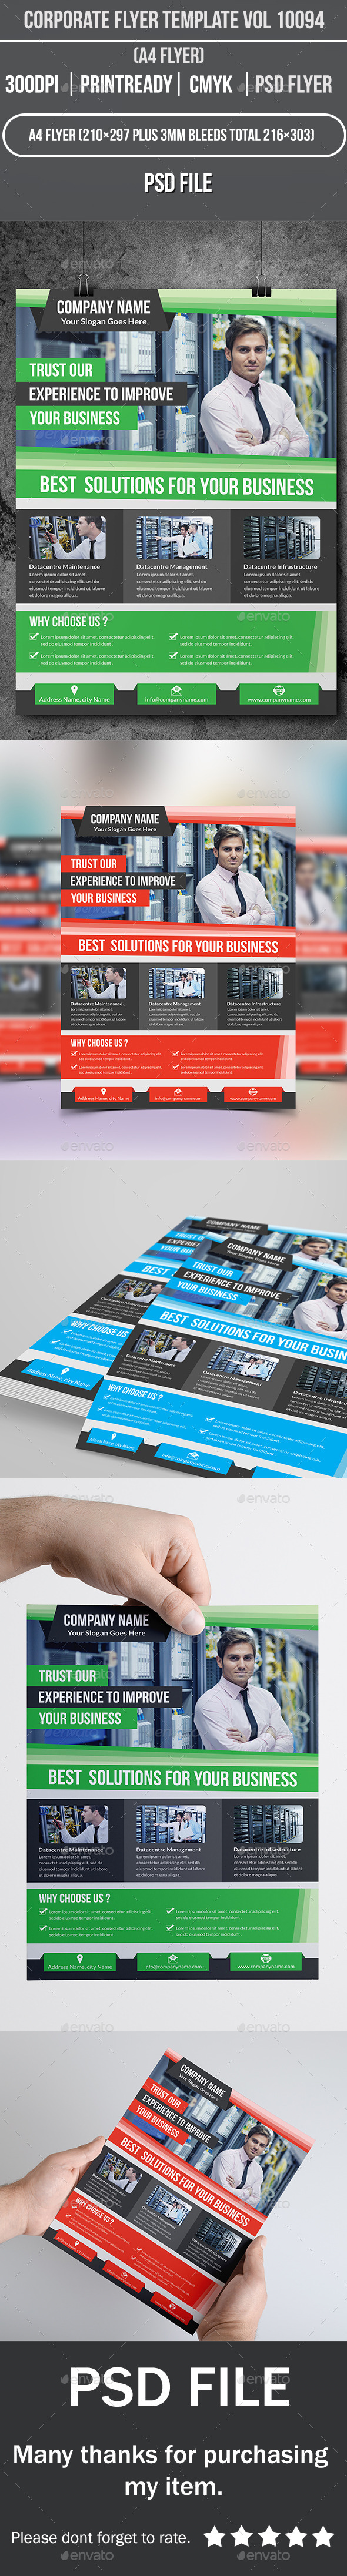 Corporate Flyer Template Vol 10094